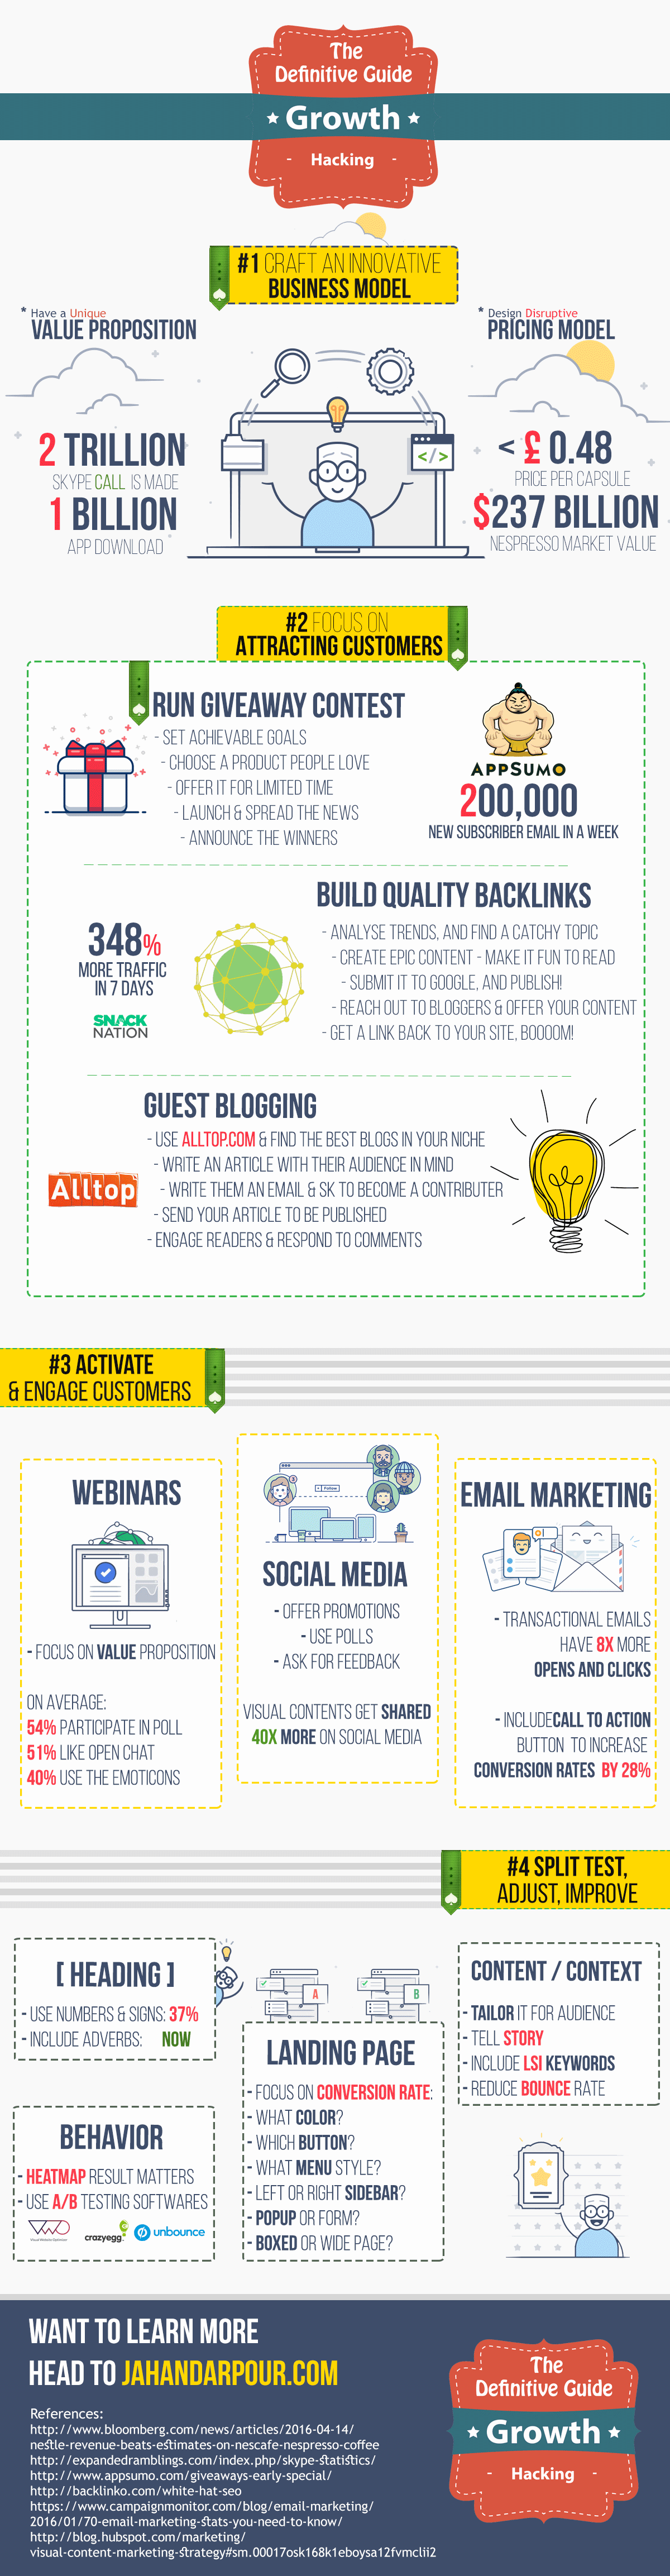 The Advanced Guide for Growth Hacking (Infographic)